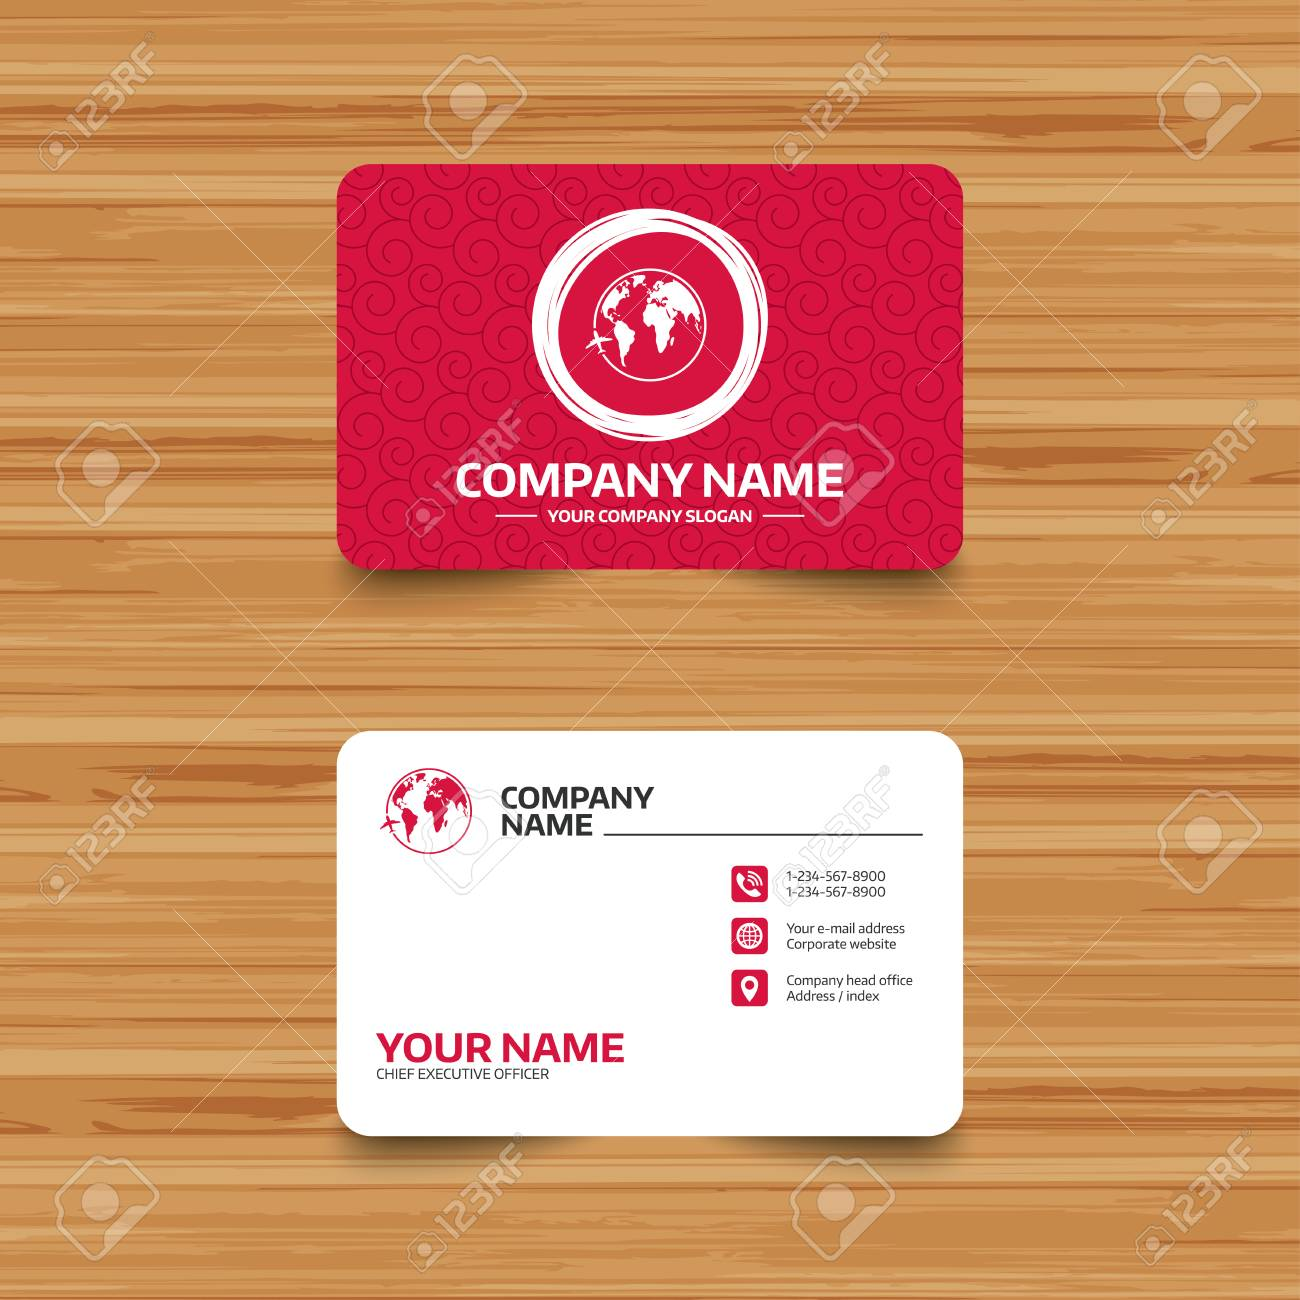 Business card template with texture airplane sign icon travel business card template with texture airplane sign icon travel trip round the world symbol cheaphphosting Gallery